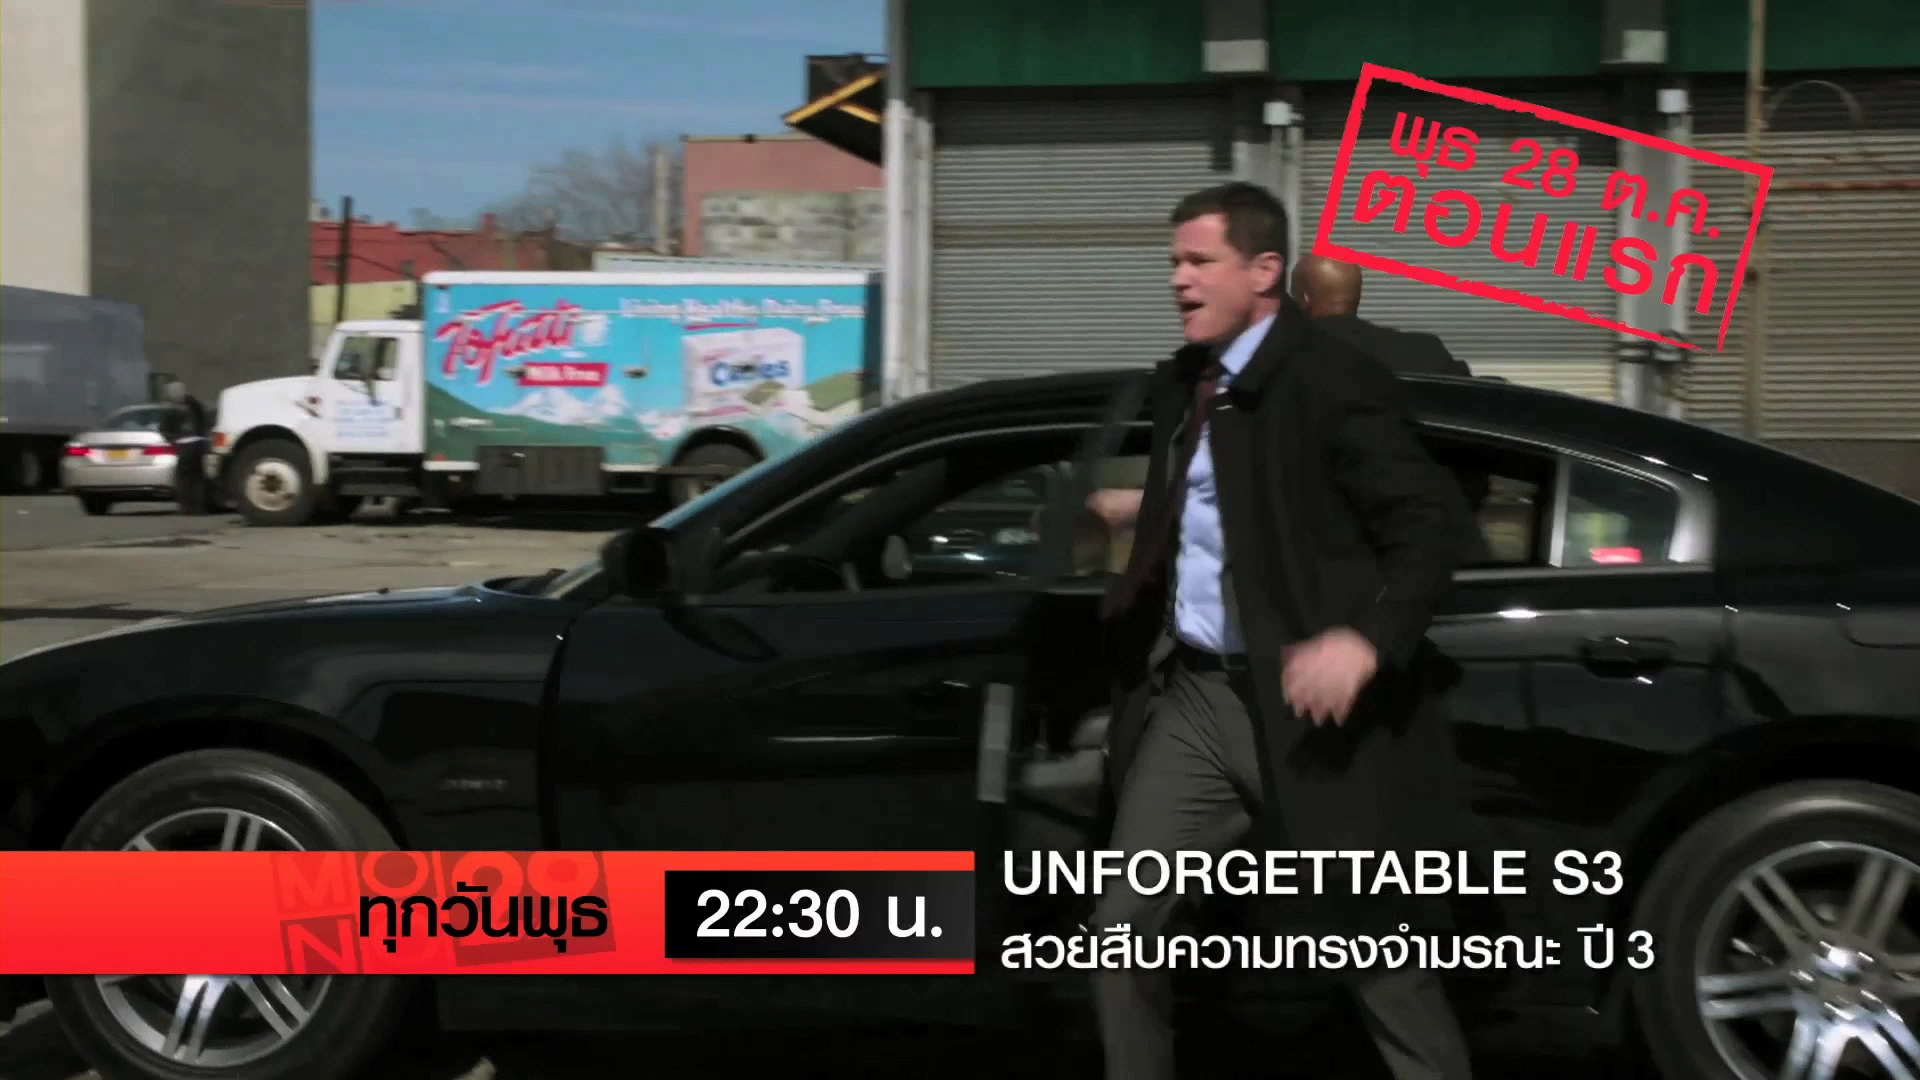 2CH_Promo_On581028(WED-2230)_Unforgettable(S03)-(EP01)_0100_FirstRun.mov_000022000